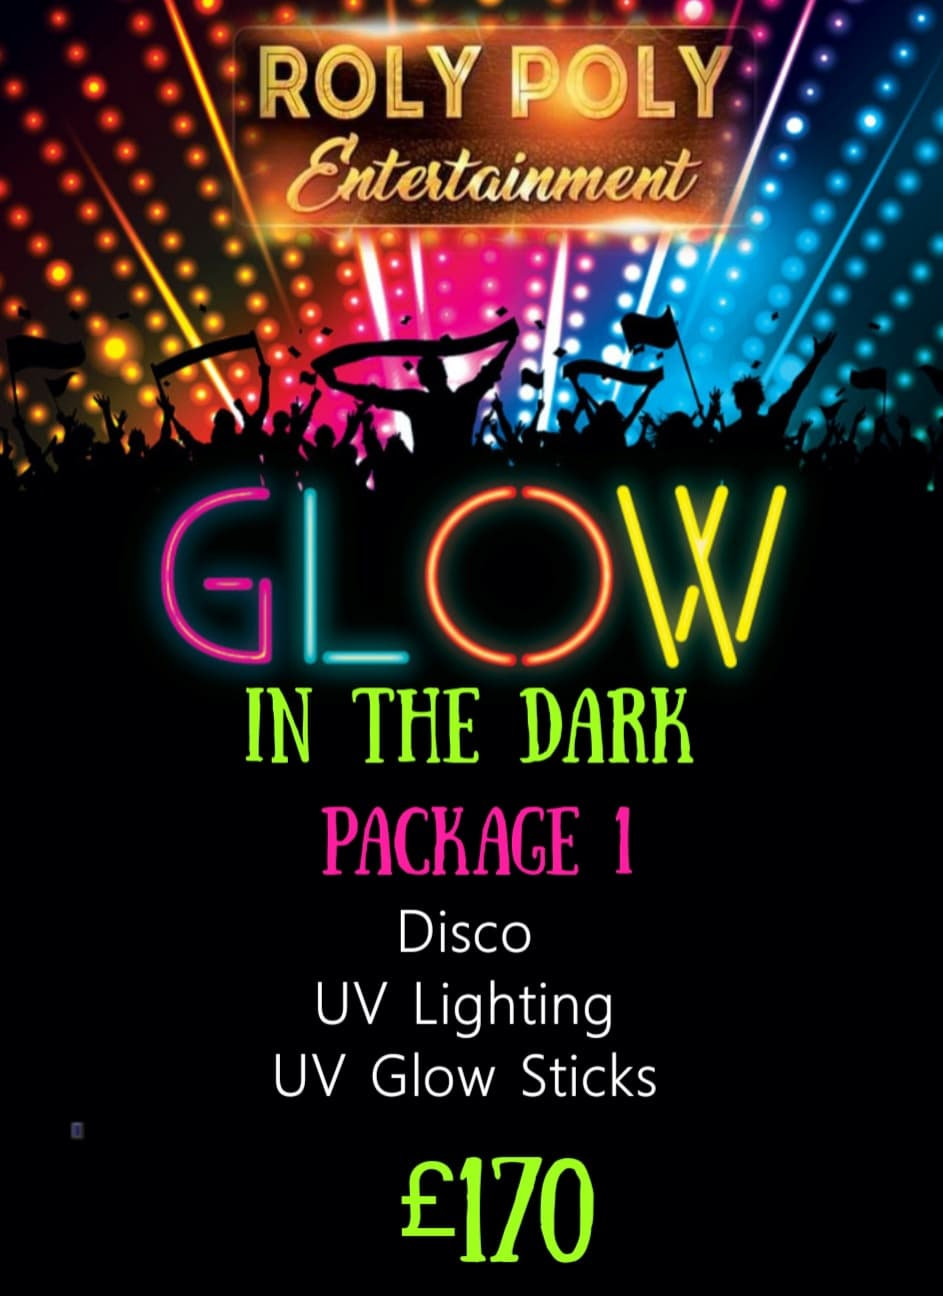 Glow Party Package 1